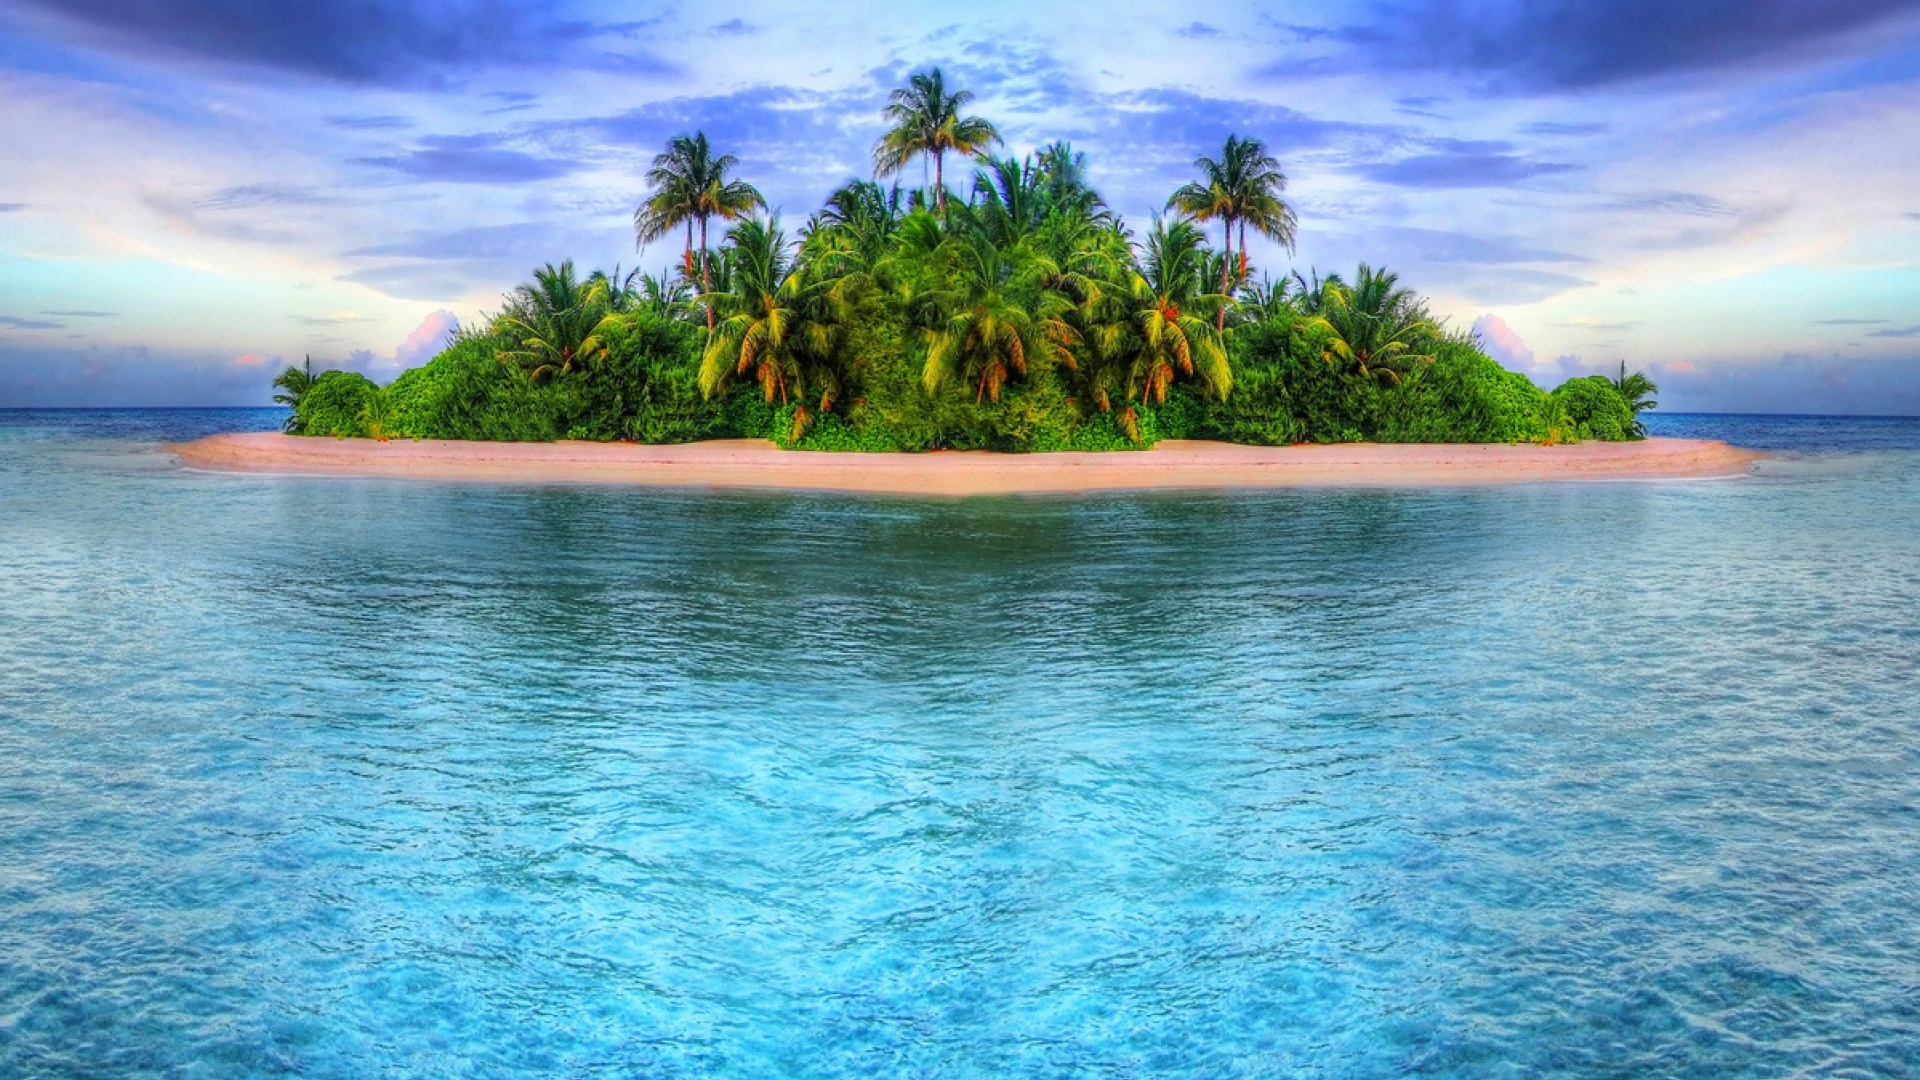 tropical hd wallpaper widescreen 1920x1080 - photo #8